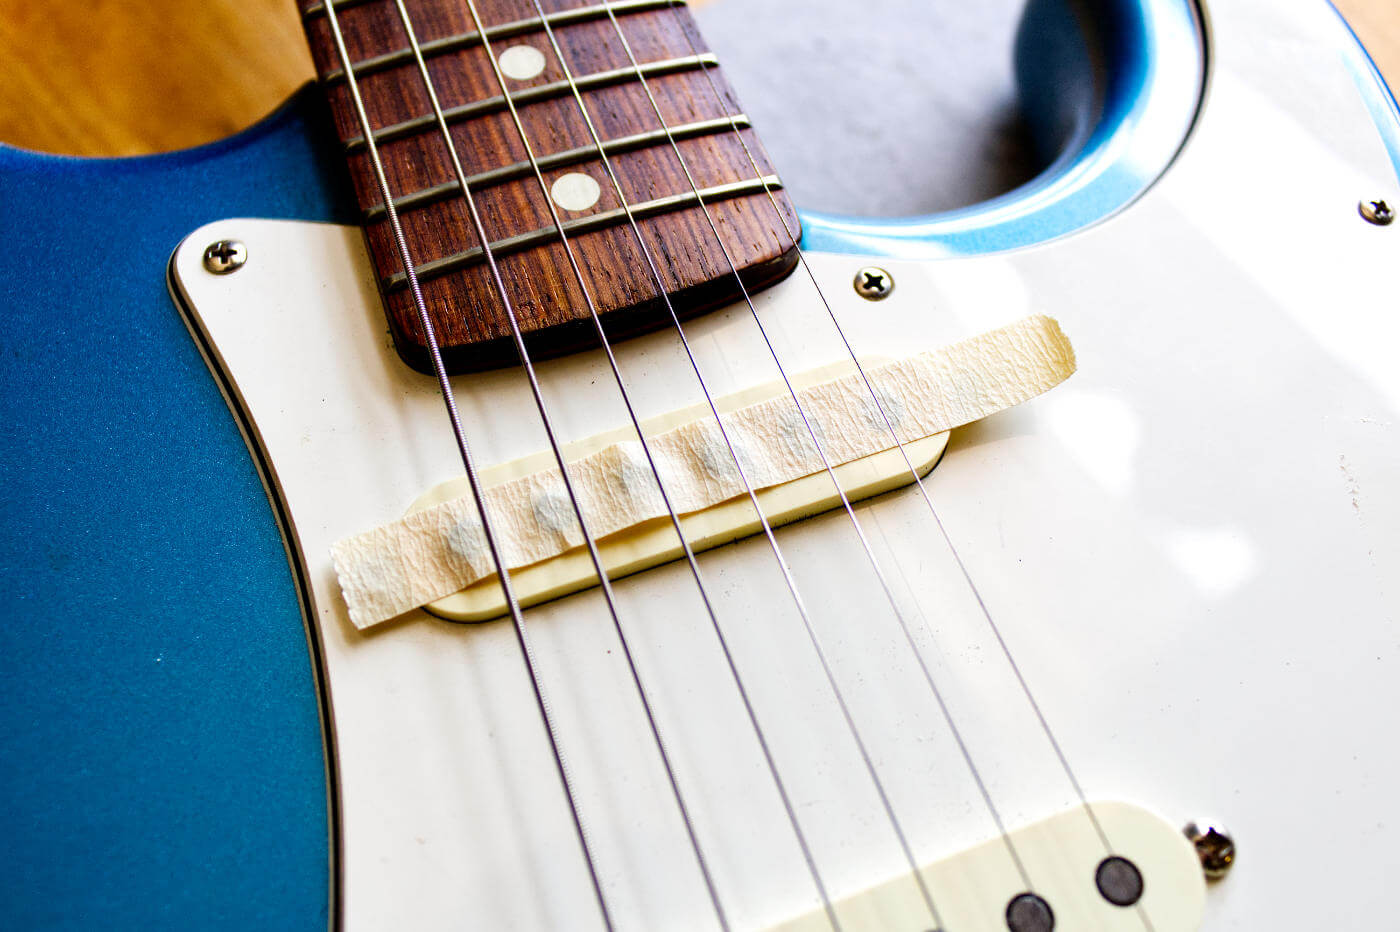 Fender strat with tape on Neck pickup to remove metal filings